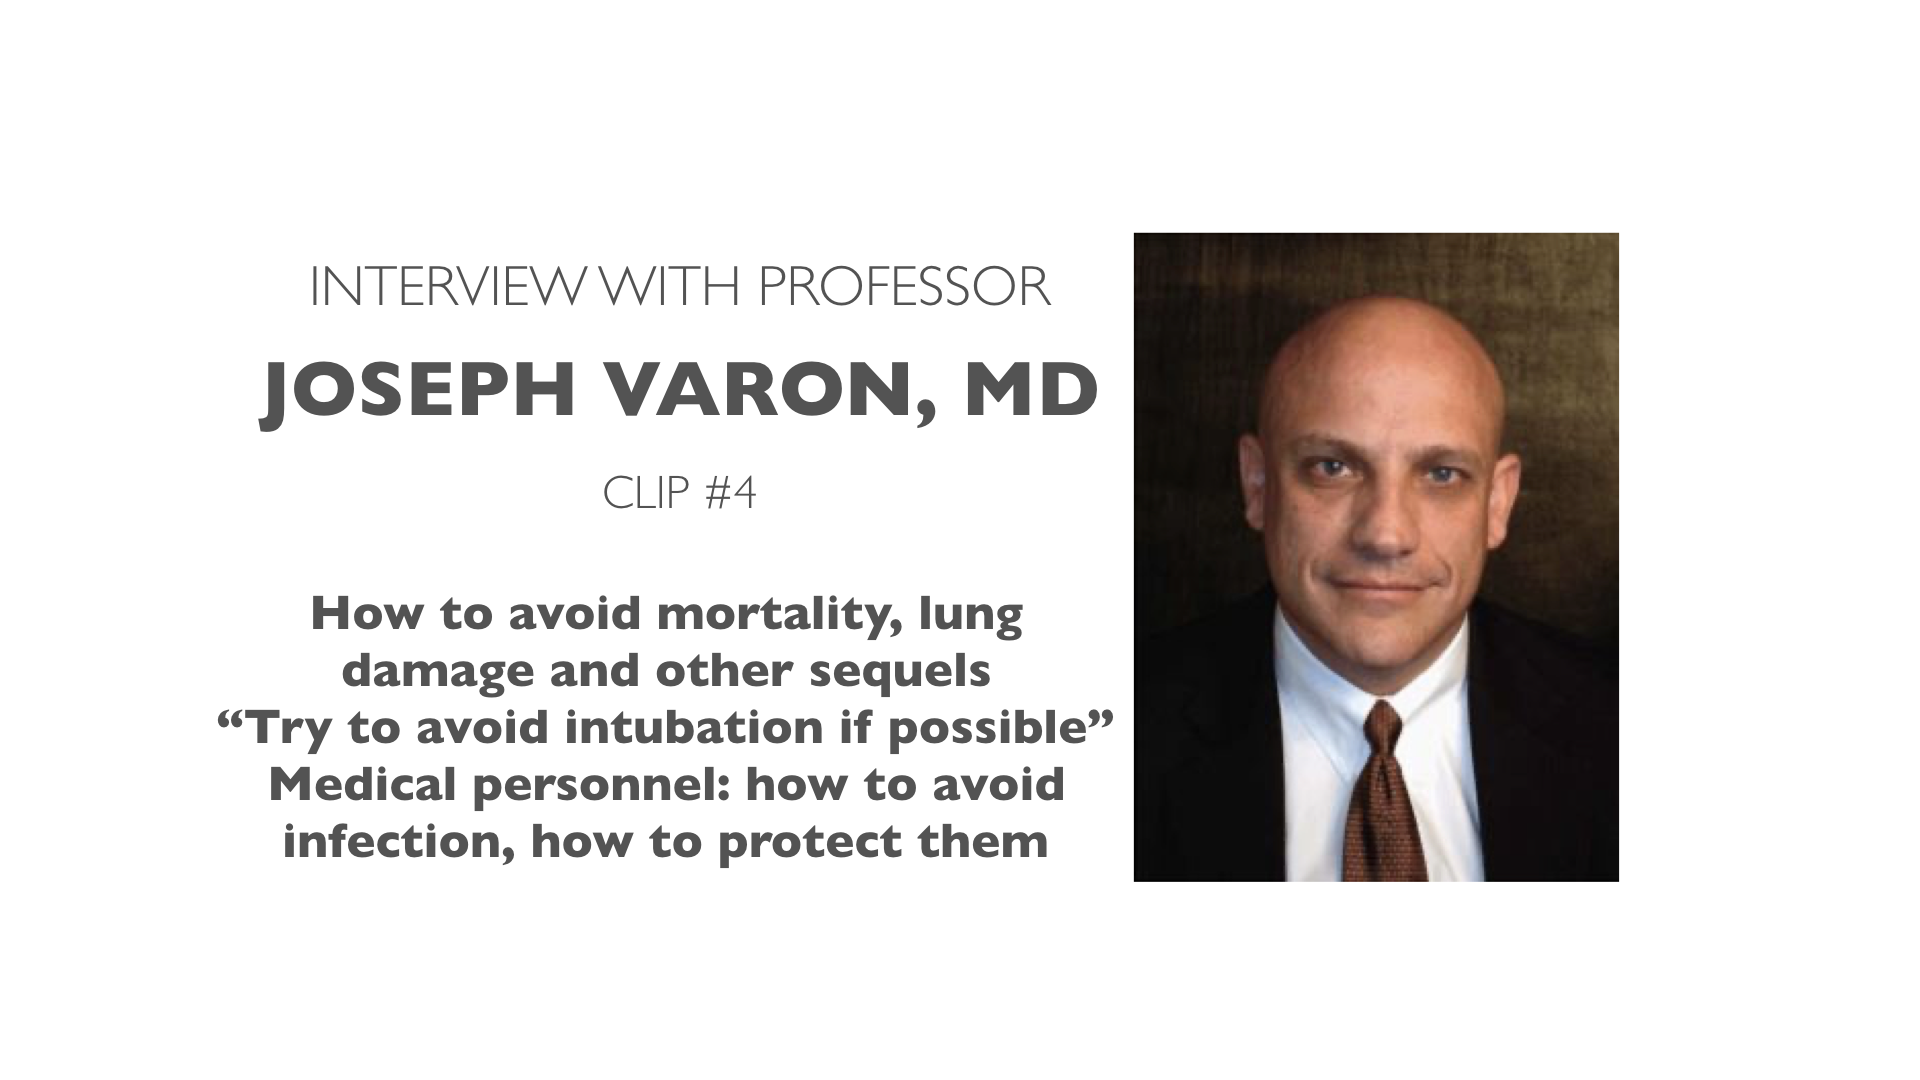 Professor Varon Interview: Preventing Lung Damage, Avoiding Intubation, Protecting Medical Personnel